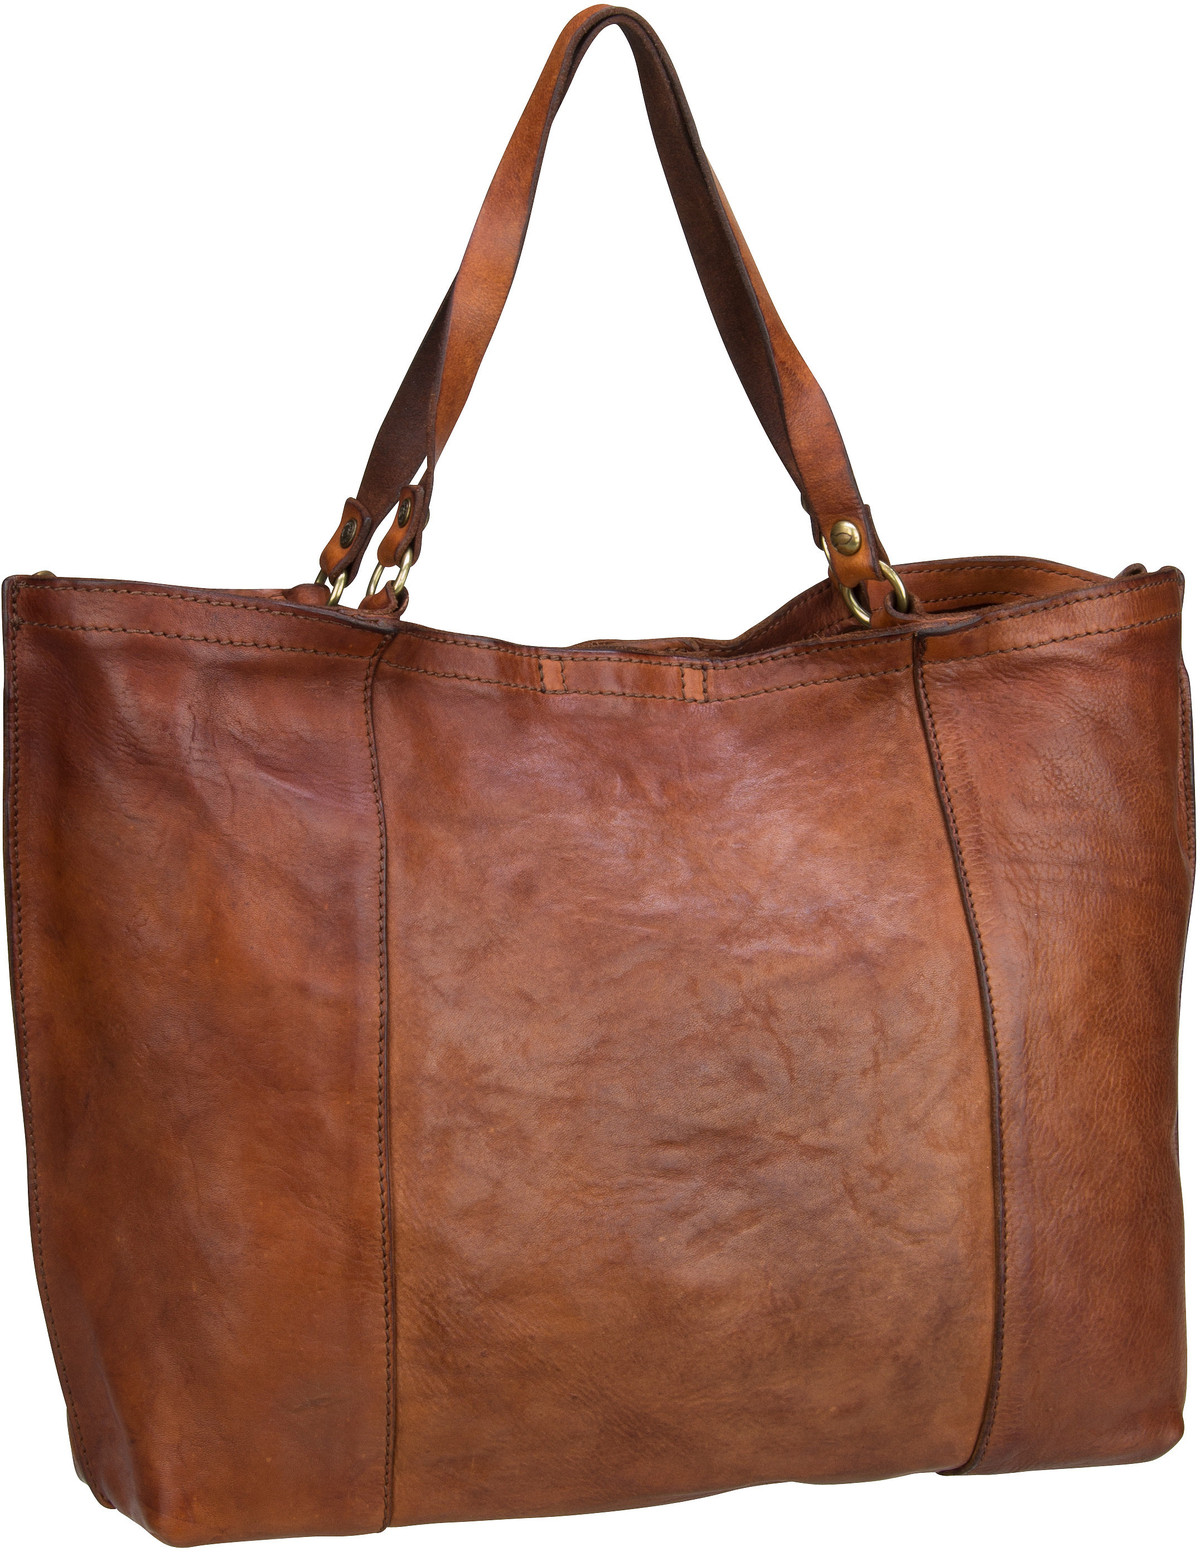 Shopper Calipso C17080 Cognac